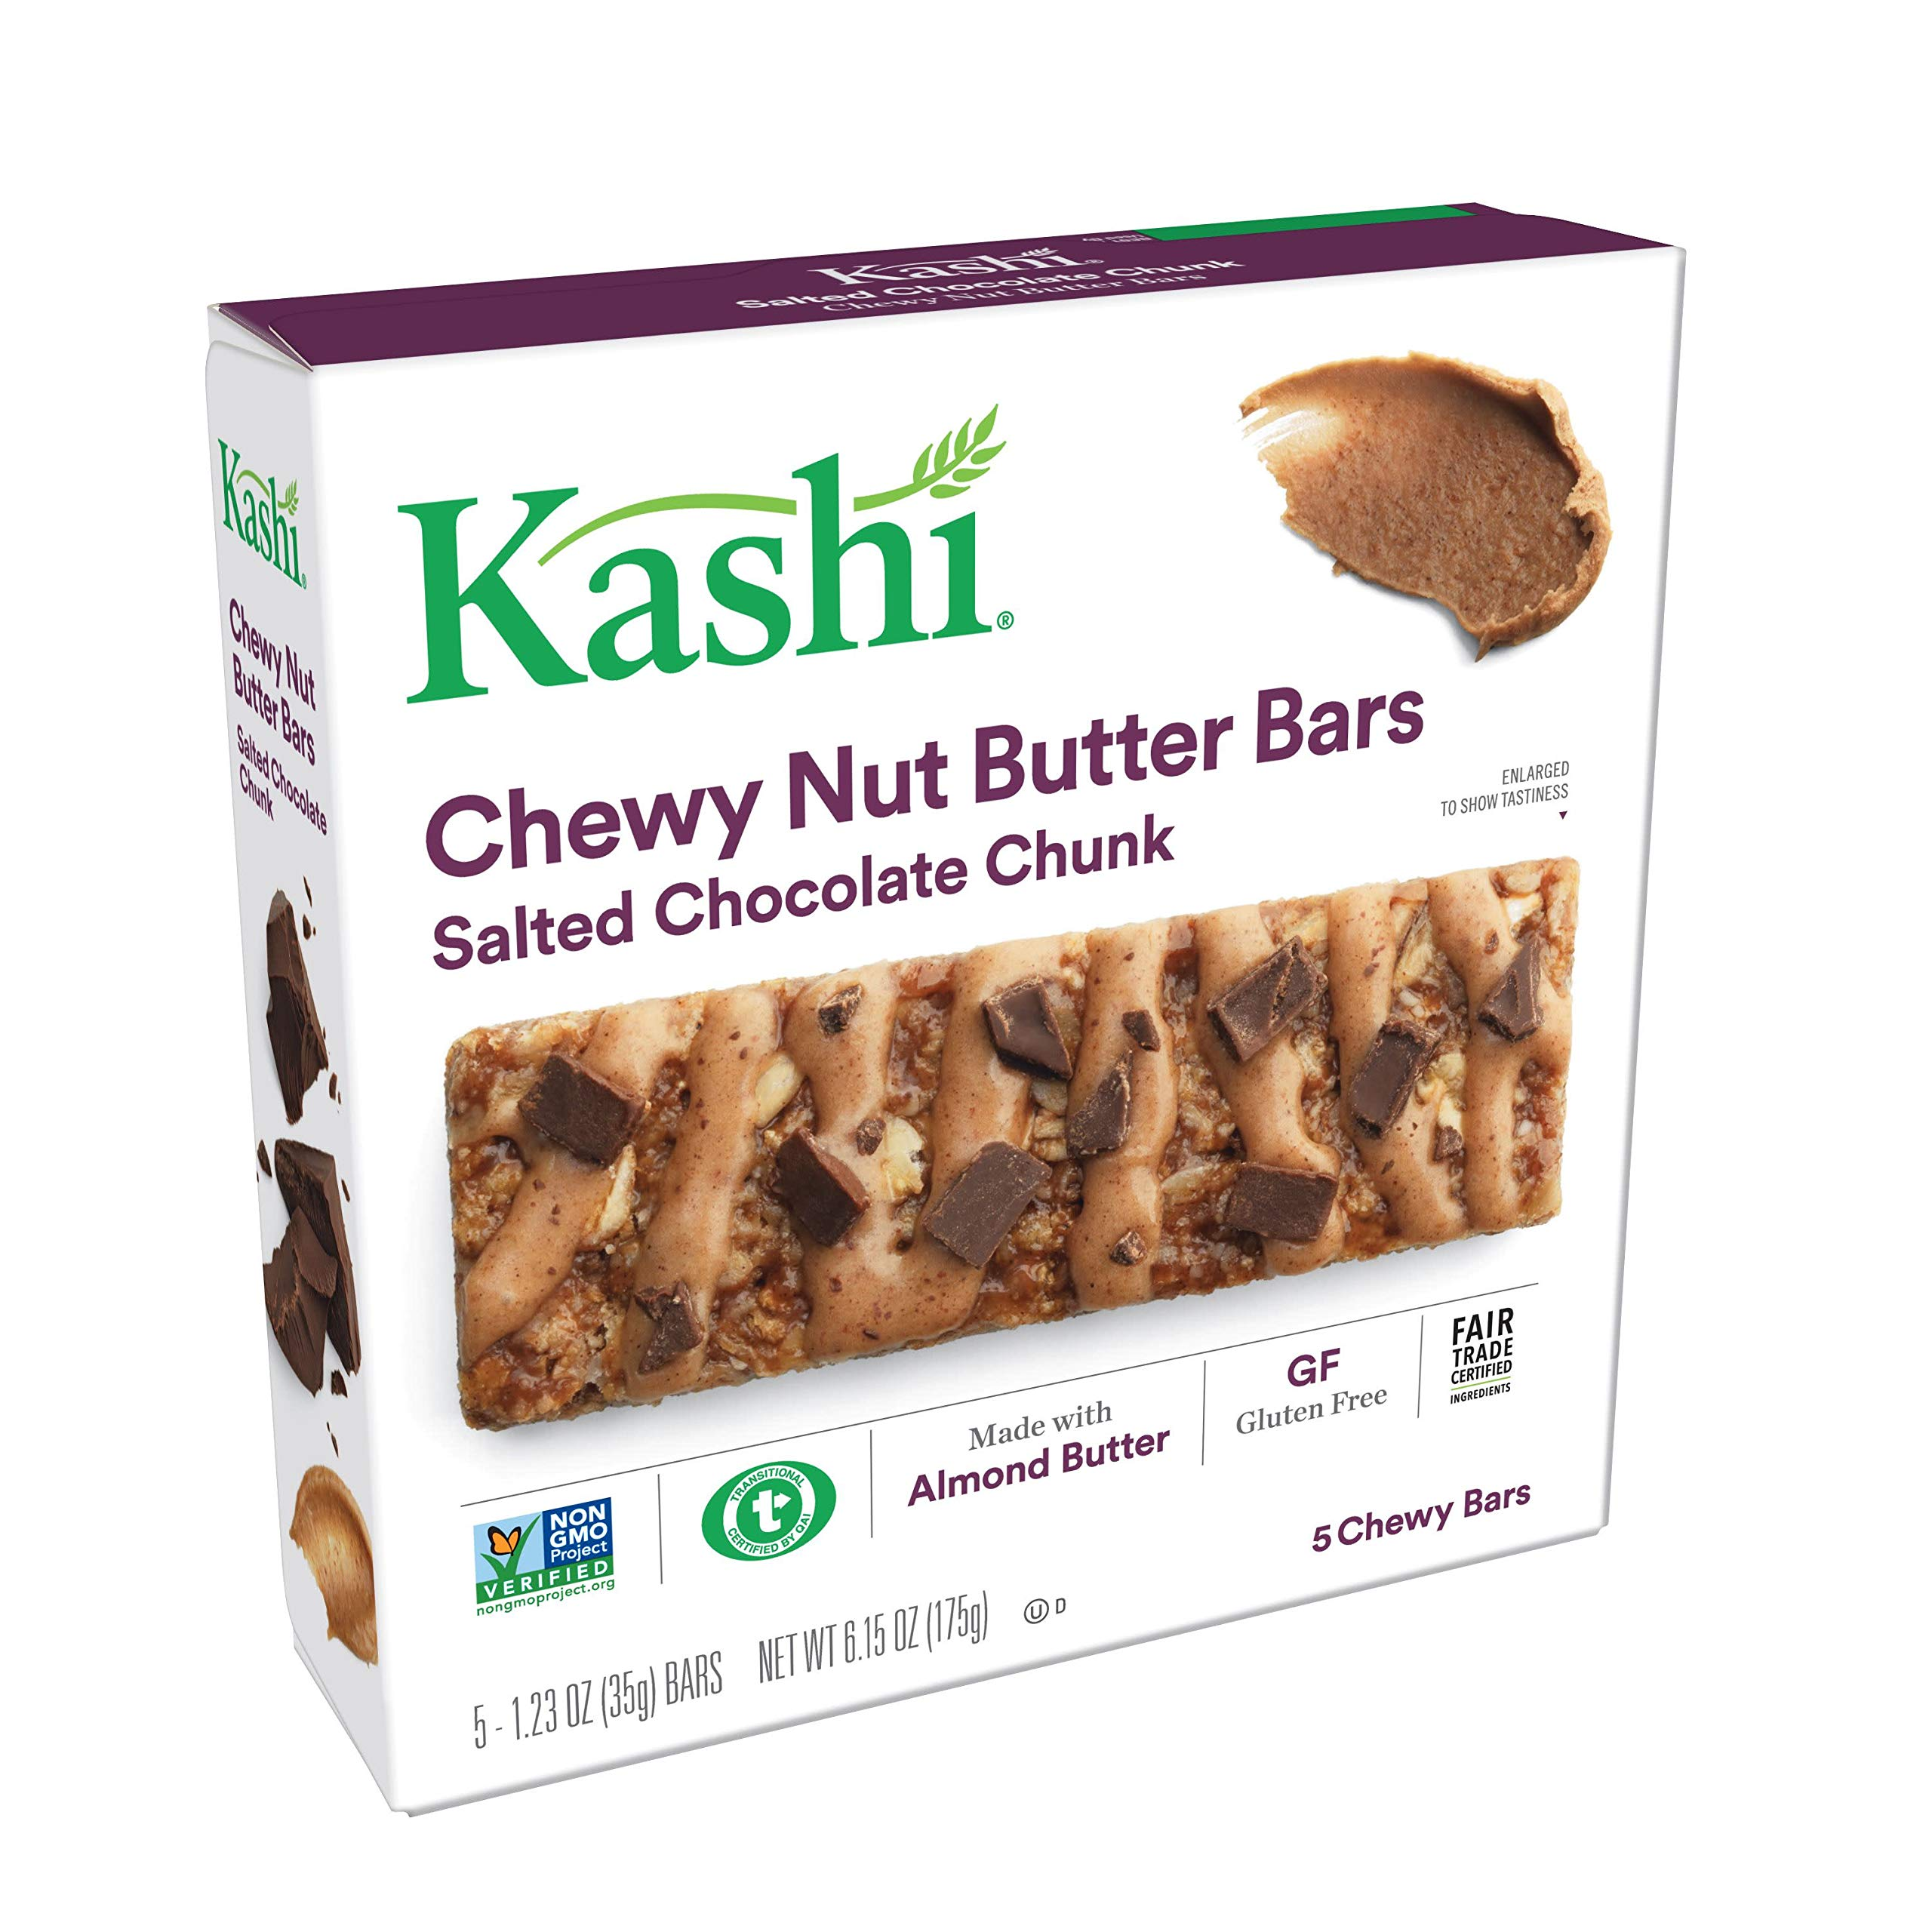 kashi chewy nut butter bars review